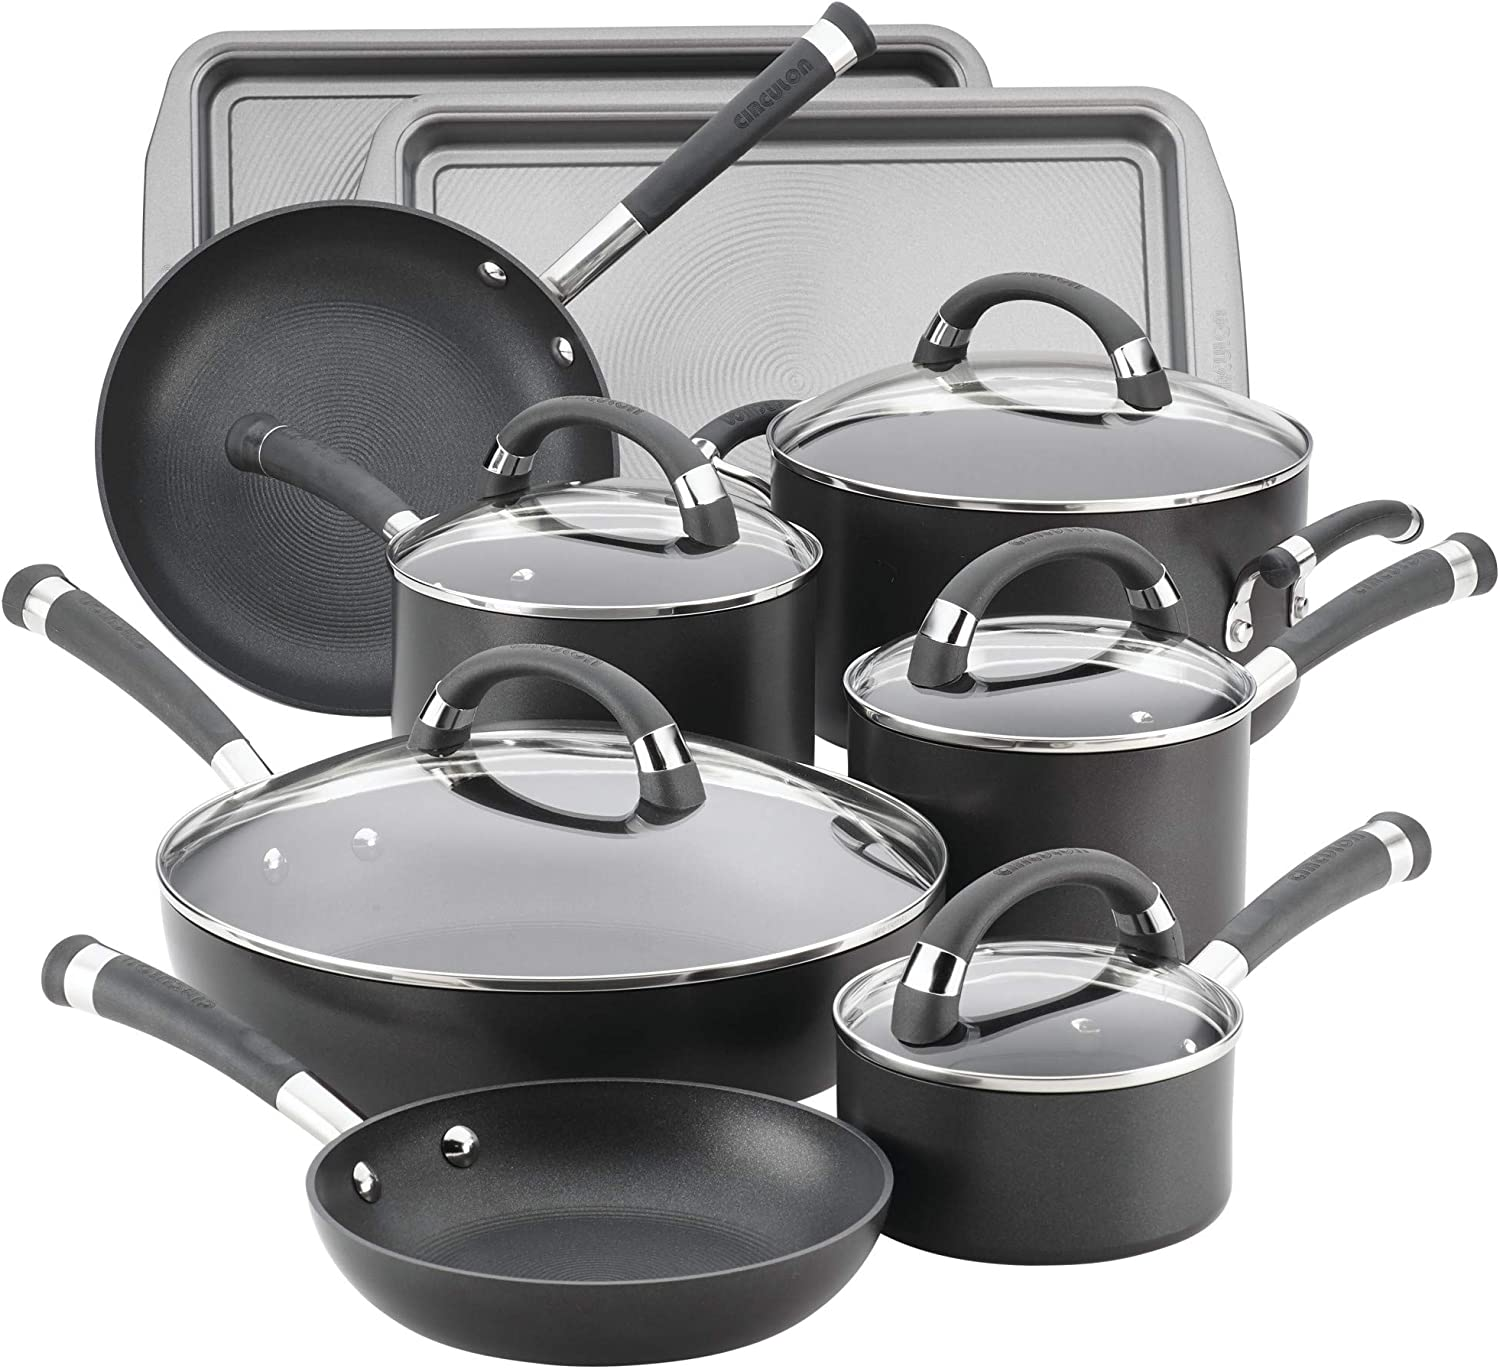 Circulon Espree Hard Anodized Nonstick Cookware Pots and Pans Set, 14 Piece, Gray Pewter